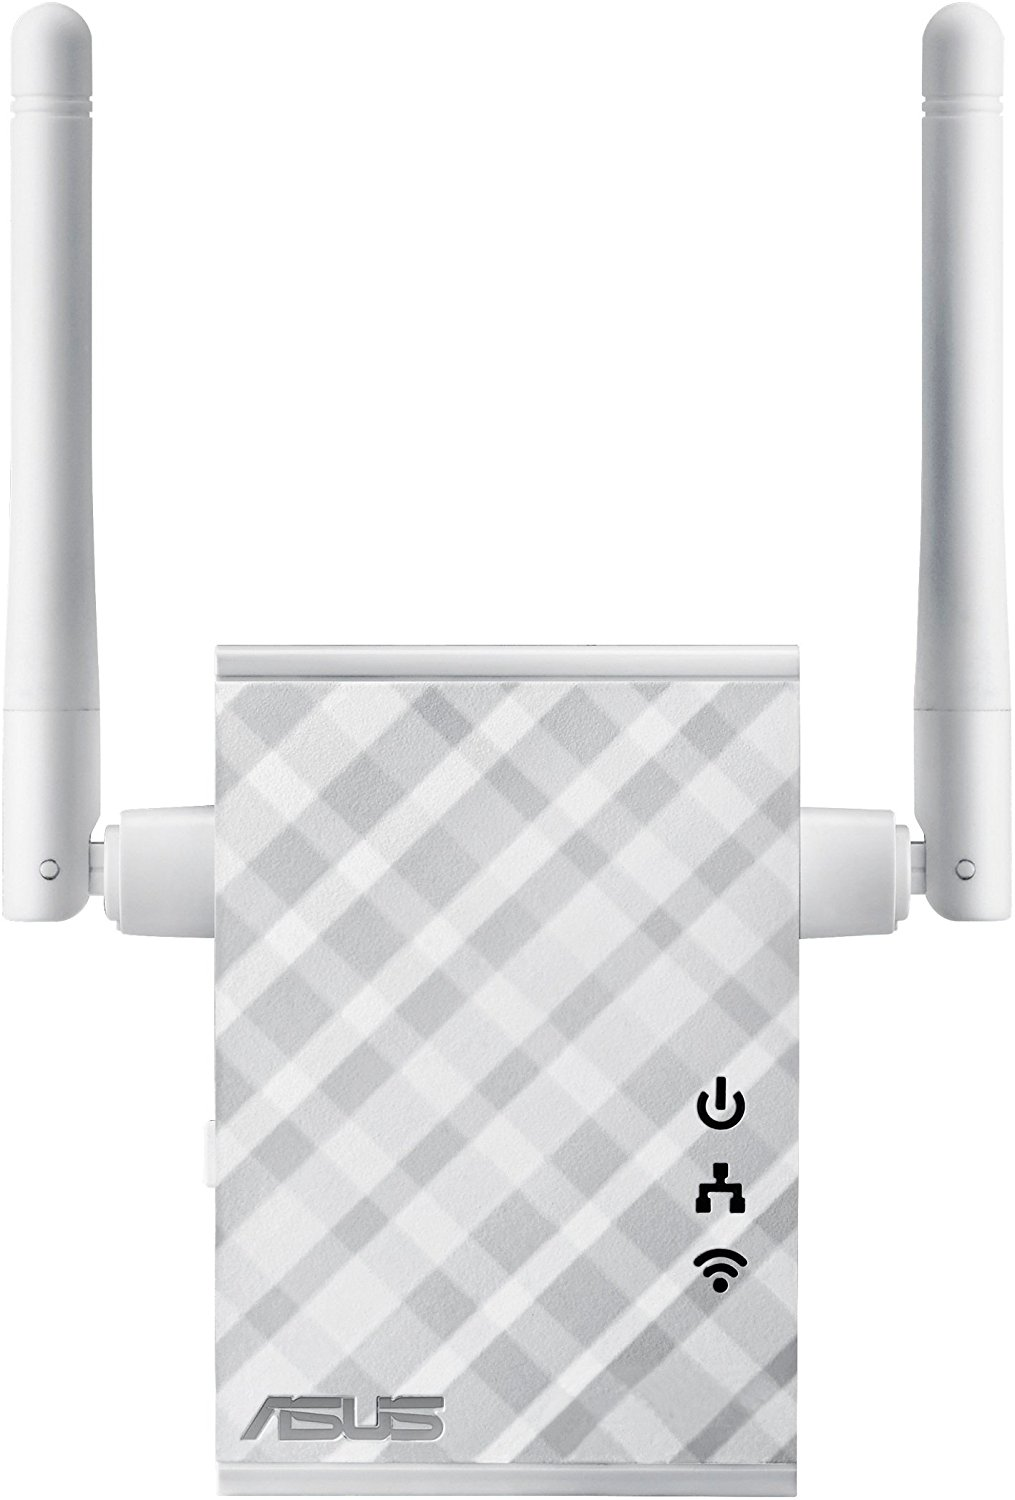 Asus WLAN Repeater amazon